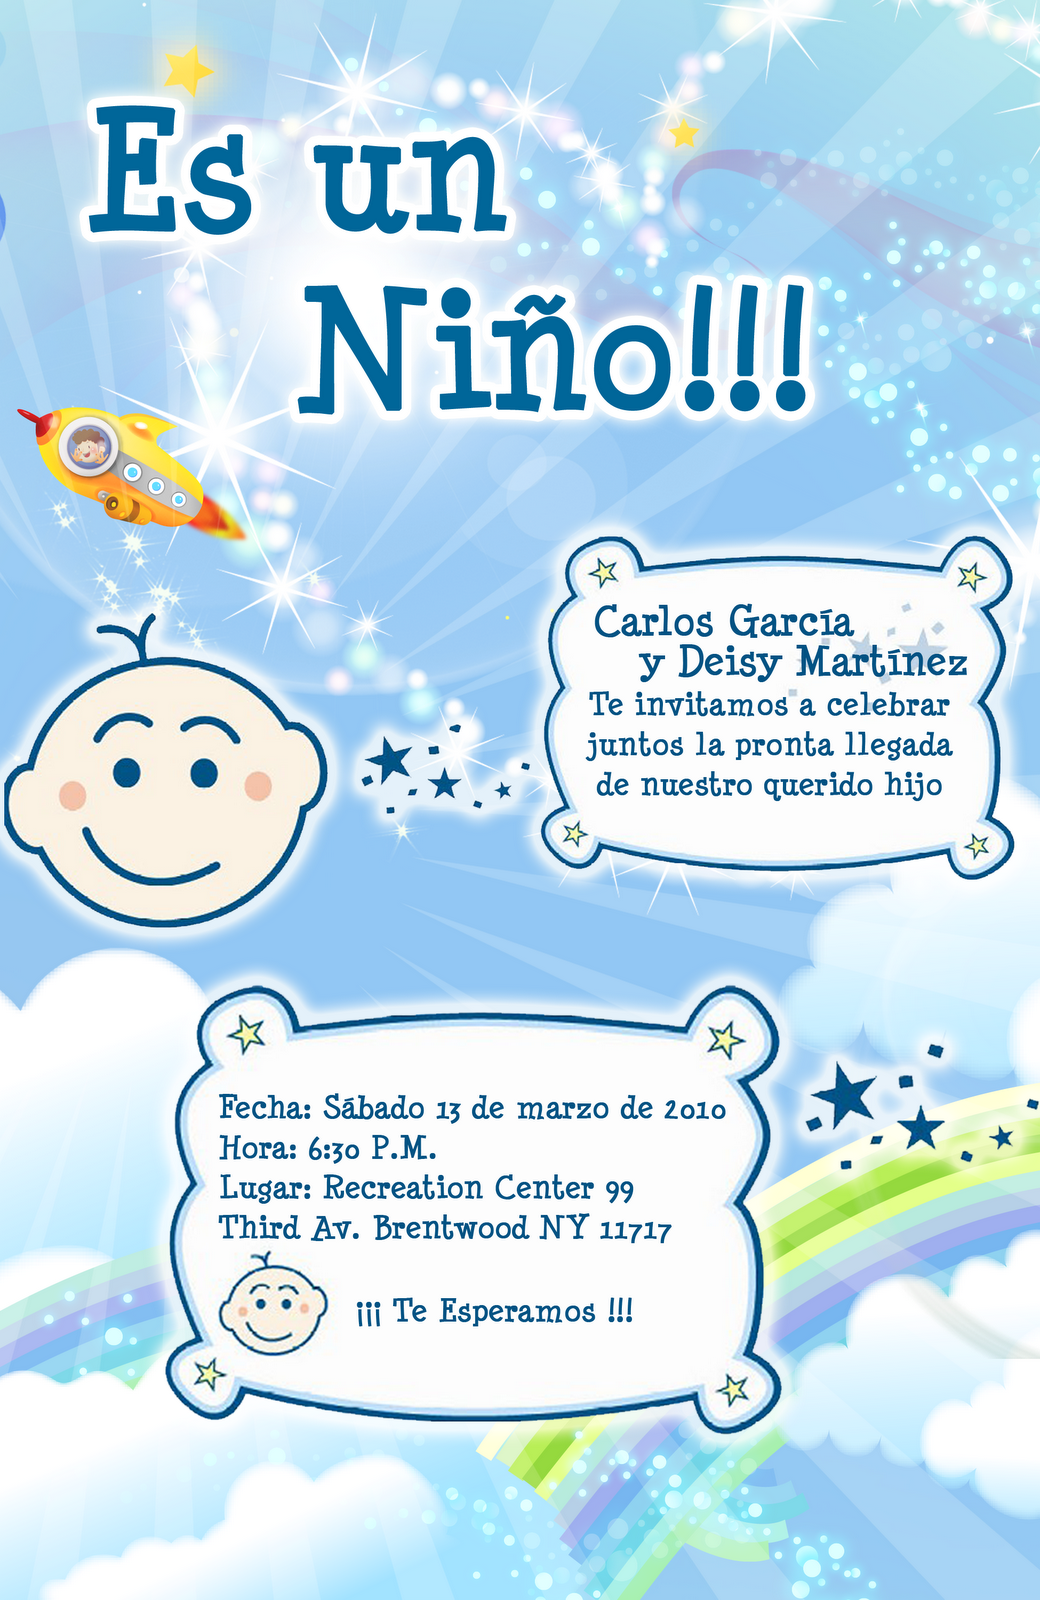 Frases para invitar a un baby shower - Imagui